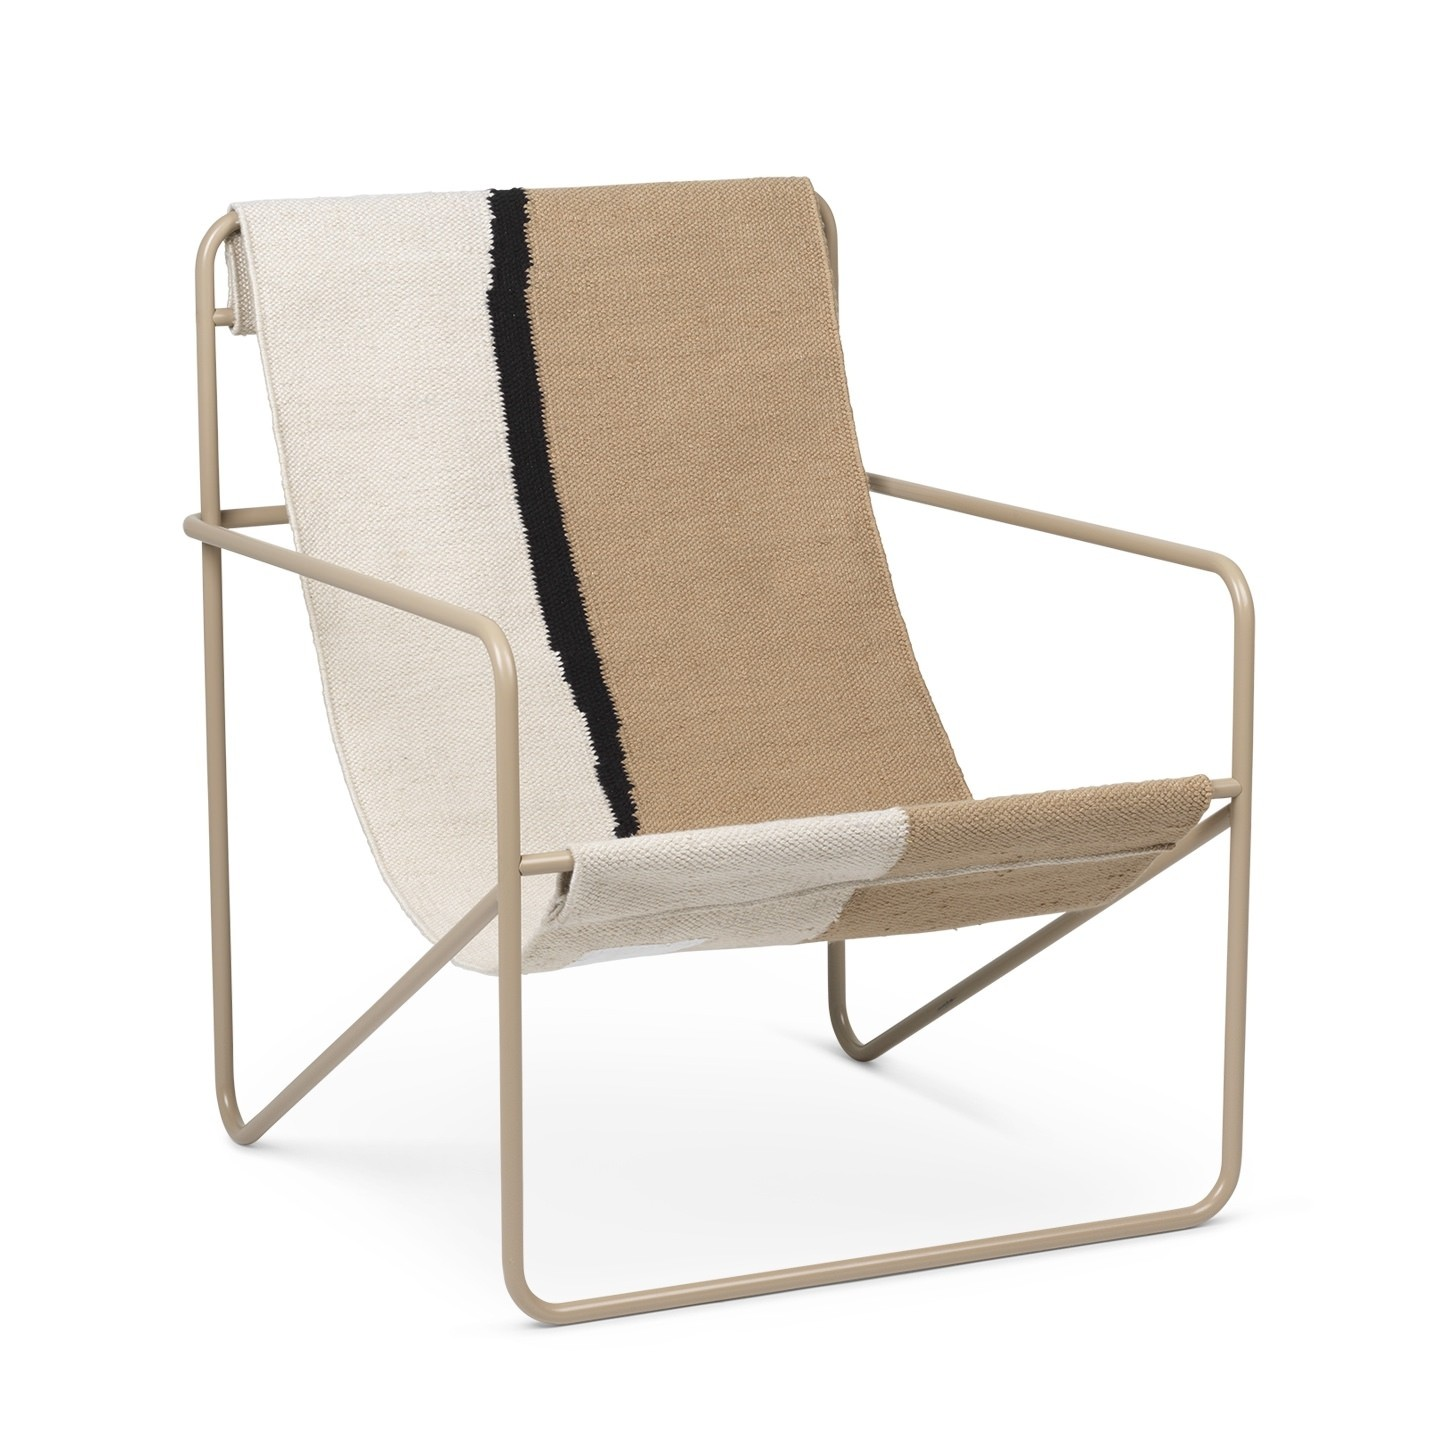 Ferm Living Desert Chair-Cashmere / Soil